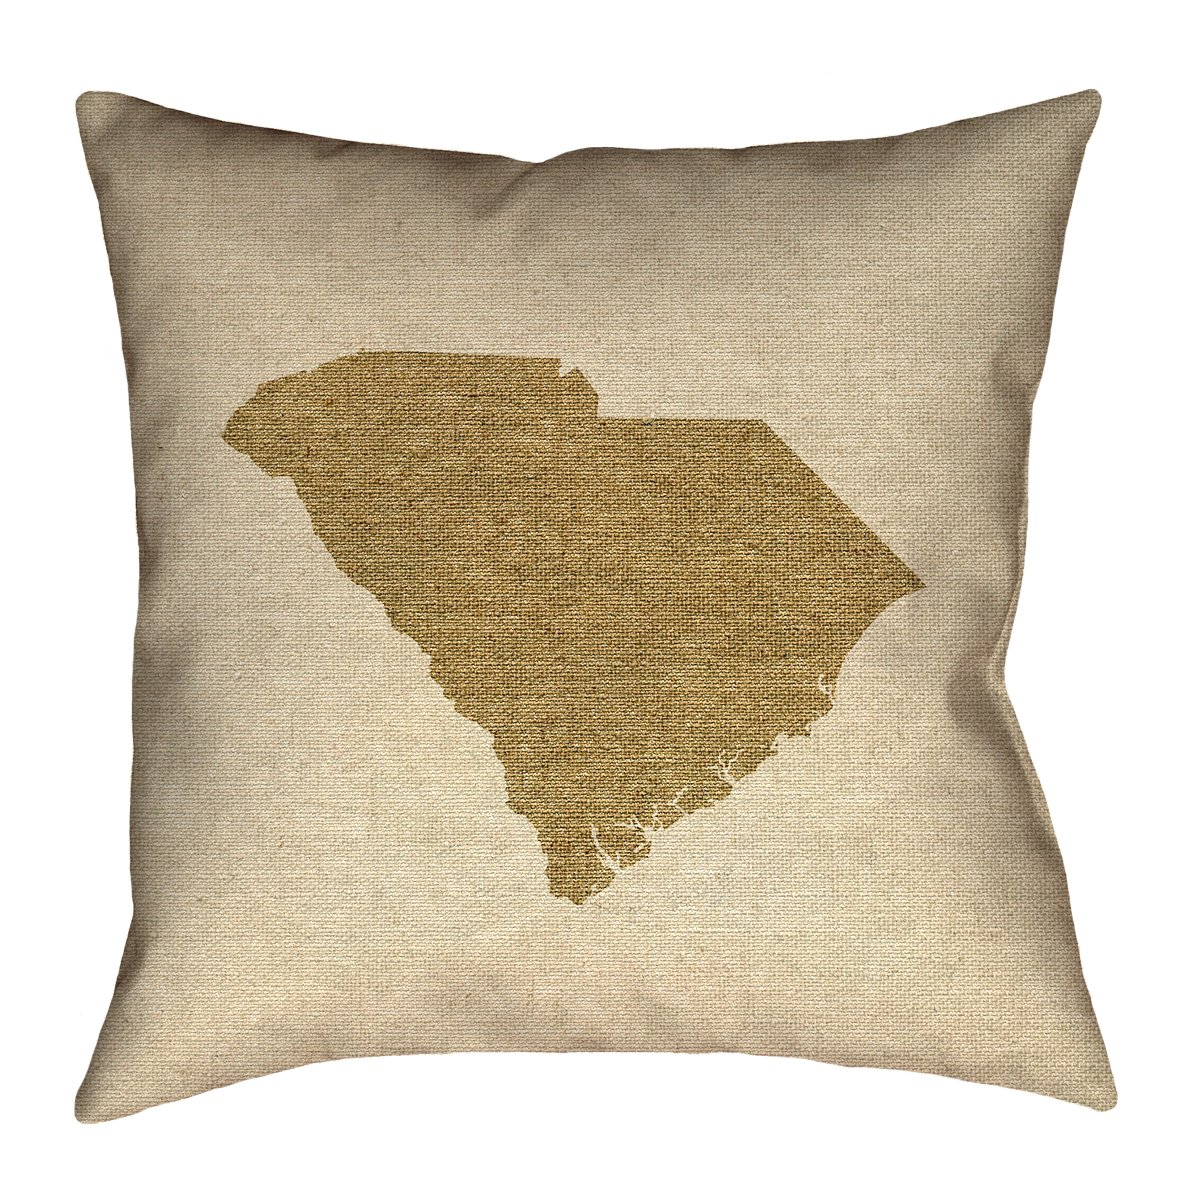 ArtVerse Katelyn Smith South Carolina Canvas 26 x 26 Pillow-Cotton Twill Double Sided Print with Concealed Zipper /& Insert